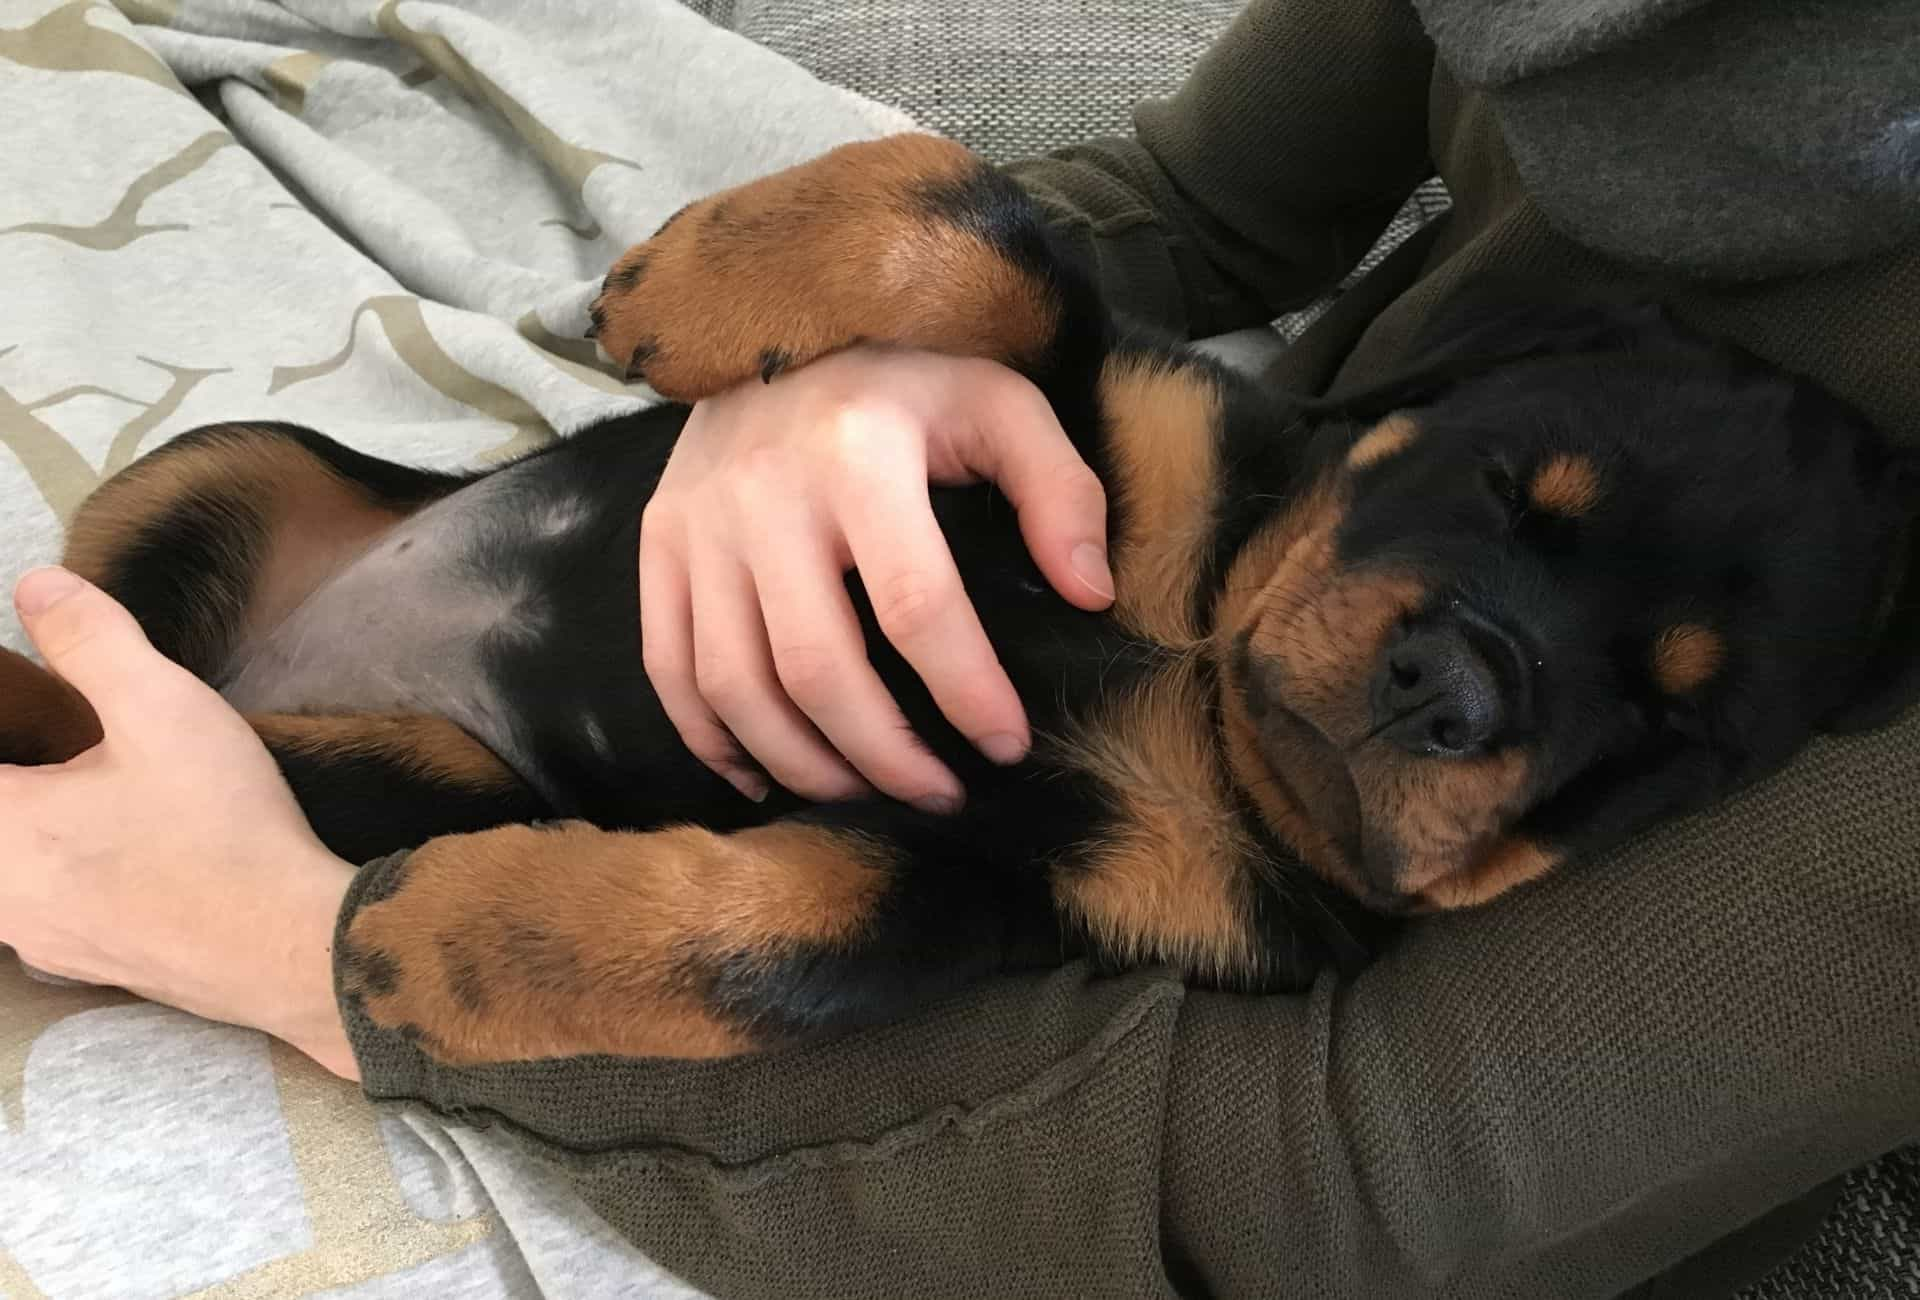 My Rottweiler puppy is sleeping and often whimpering which is pretty common for pups when dreaming.